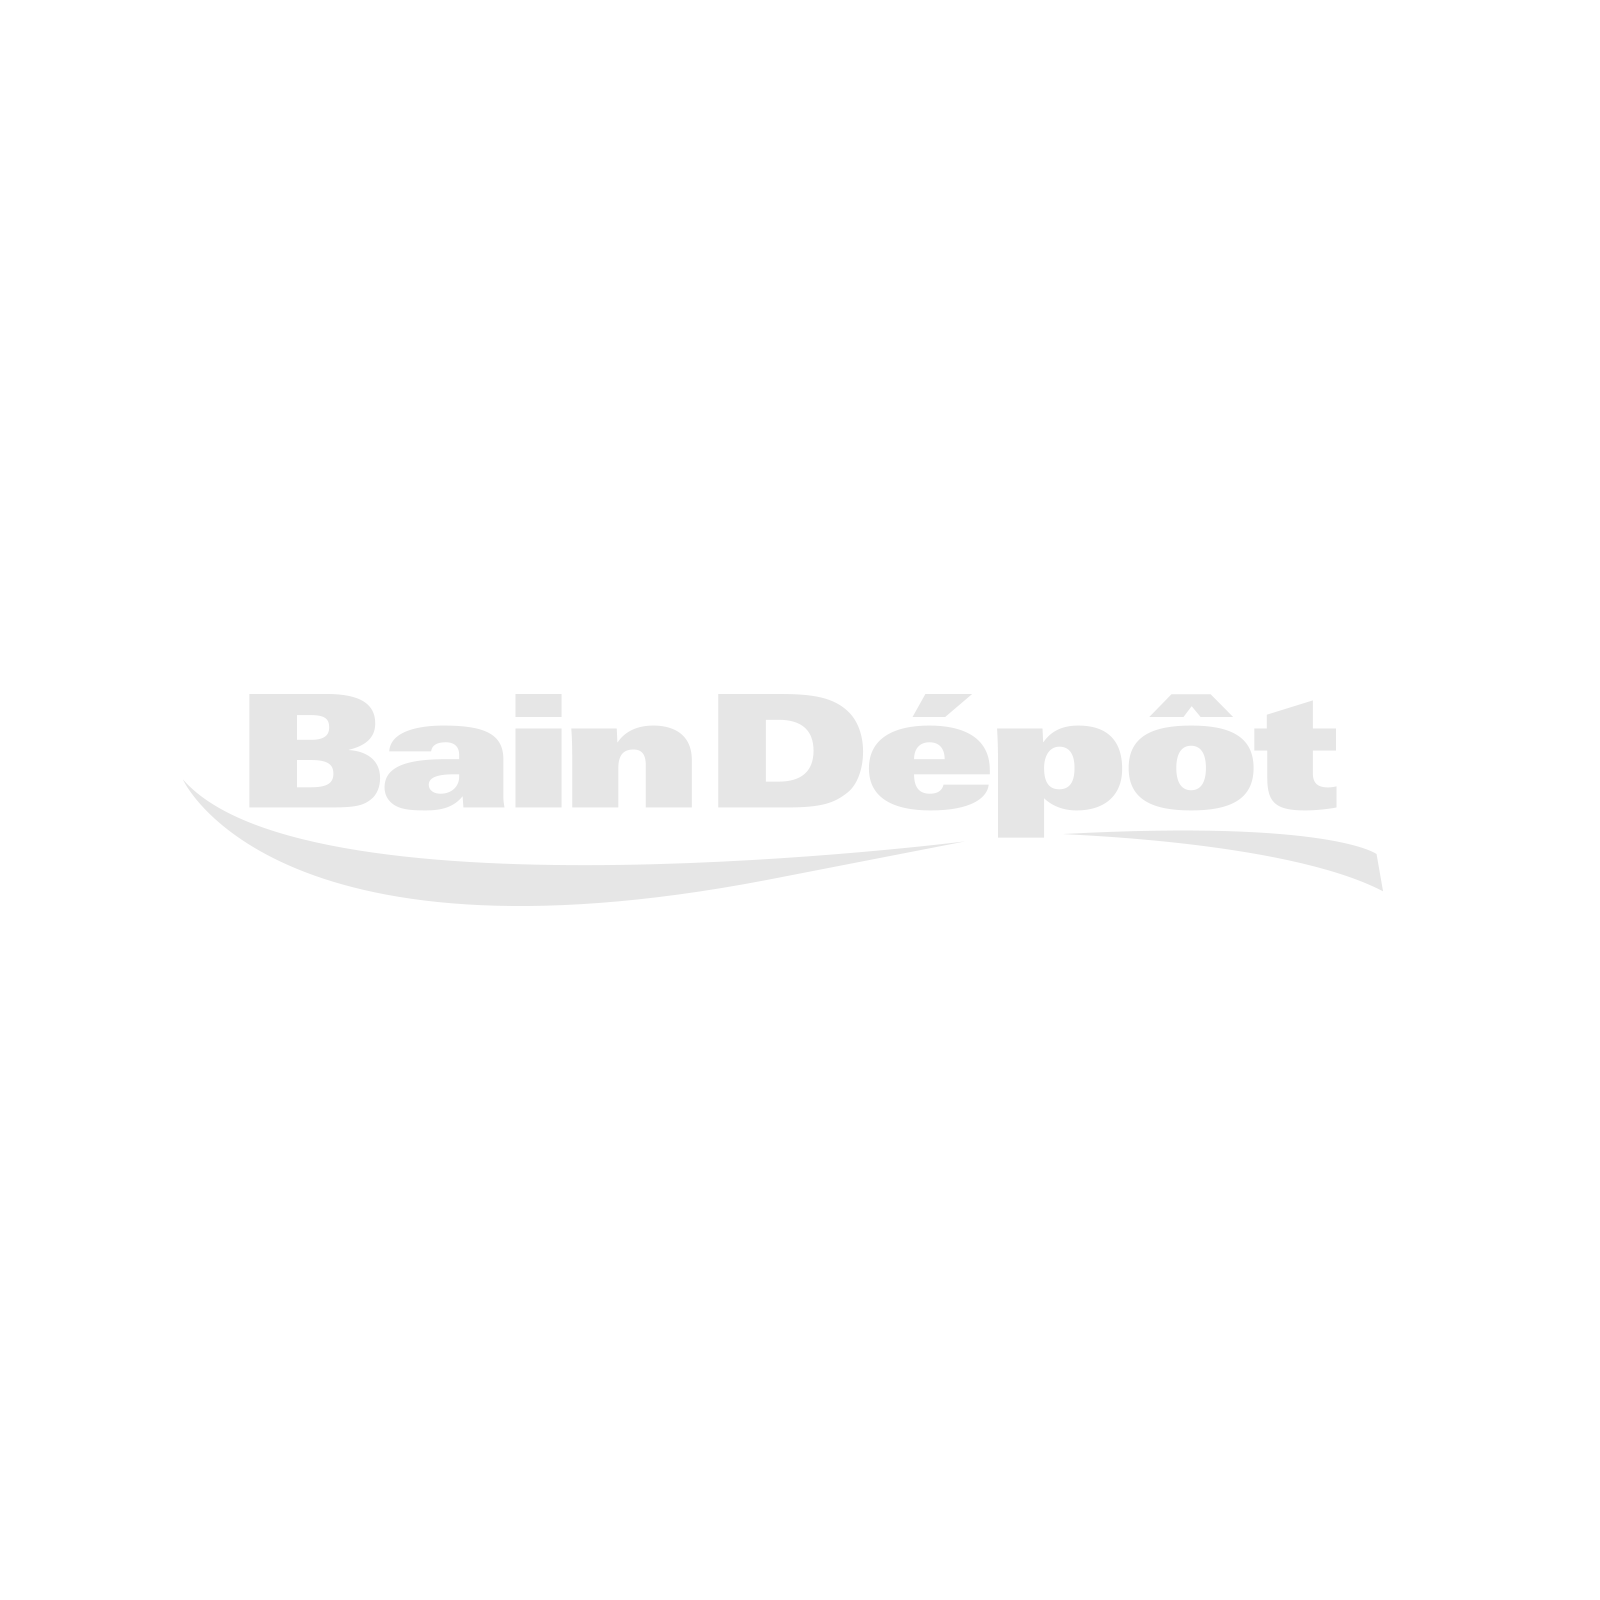 WARMUP- MAT for instalation within the adhesive layer under tiles or leveling compound convering 25 square feet